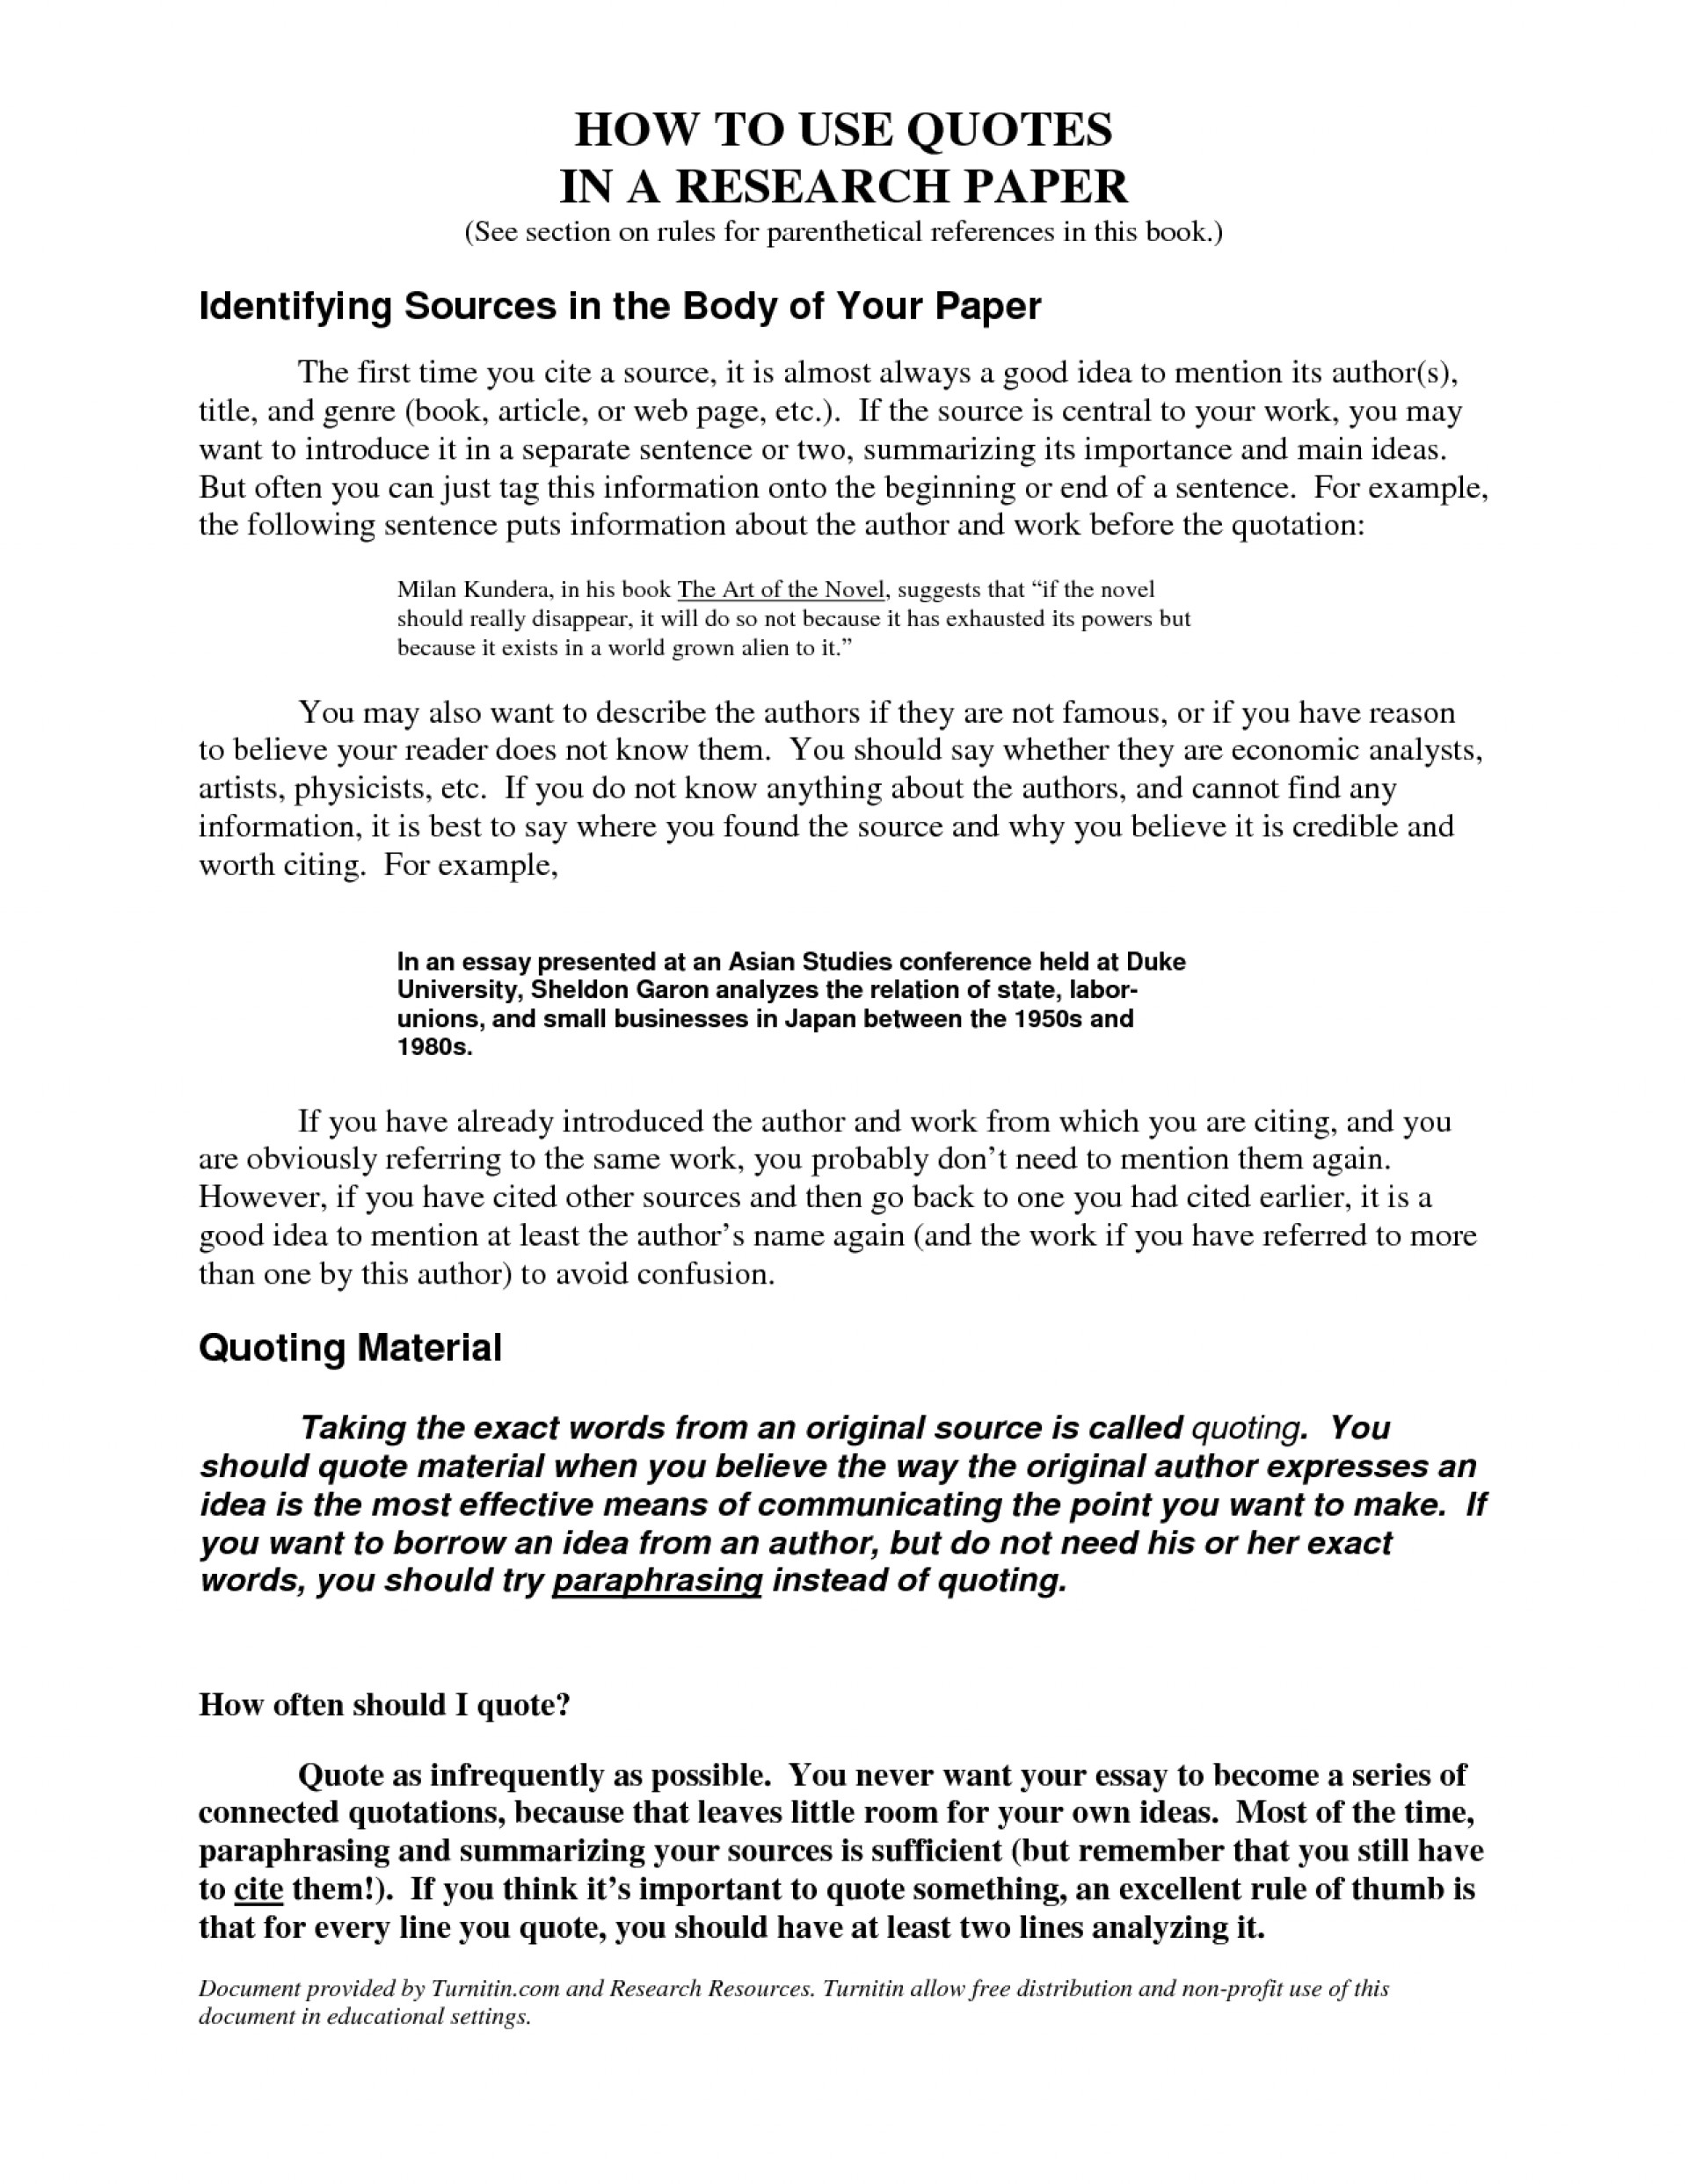 001 How To Use Quotes In An Essay Best Solutions Of Writing Essays Marvelous Embedding On Quotestopics Fearsome Apa Format Large Argumentative 1920